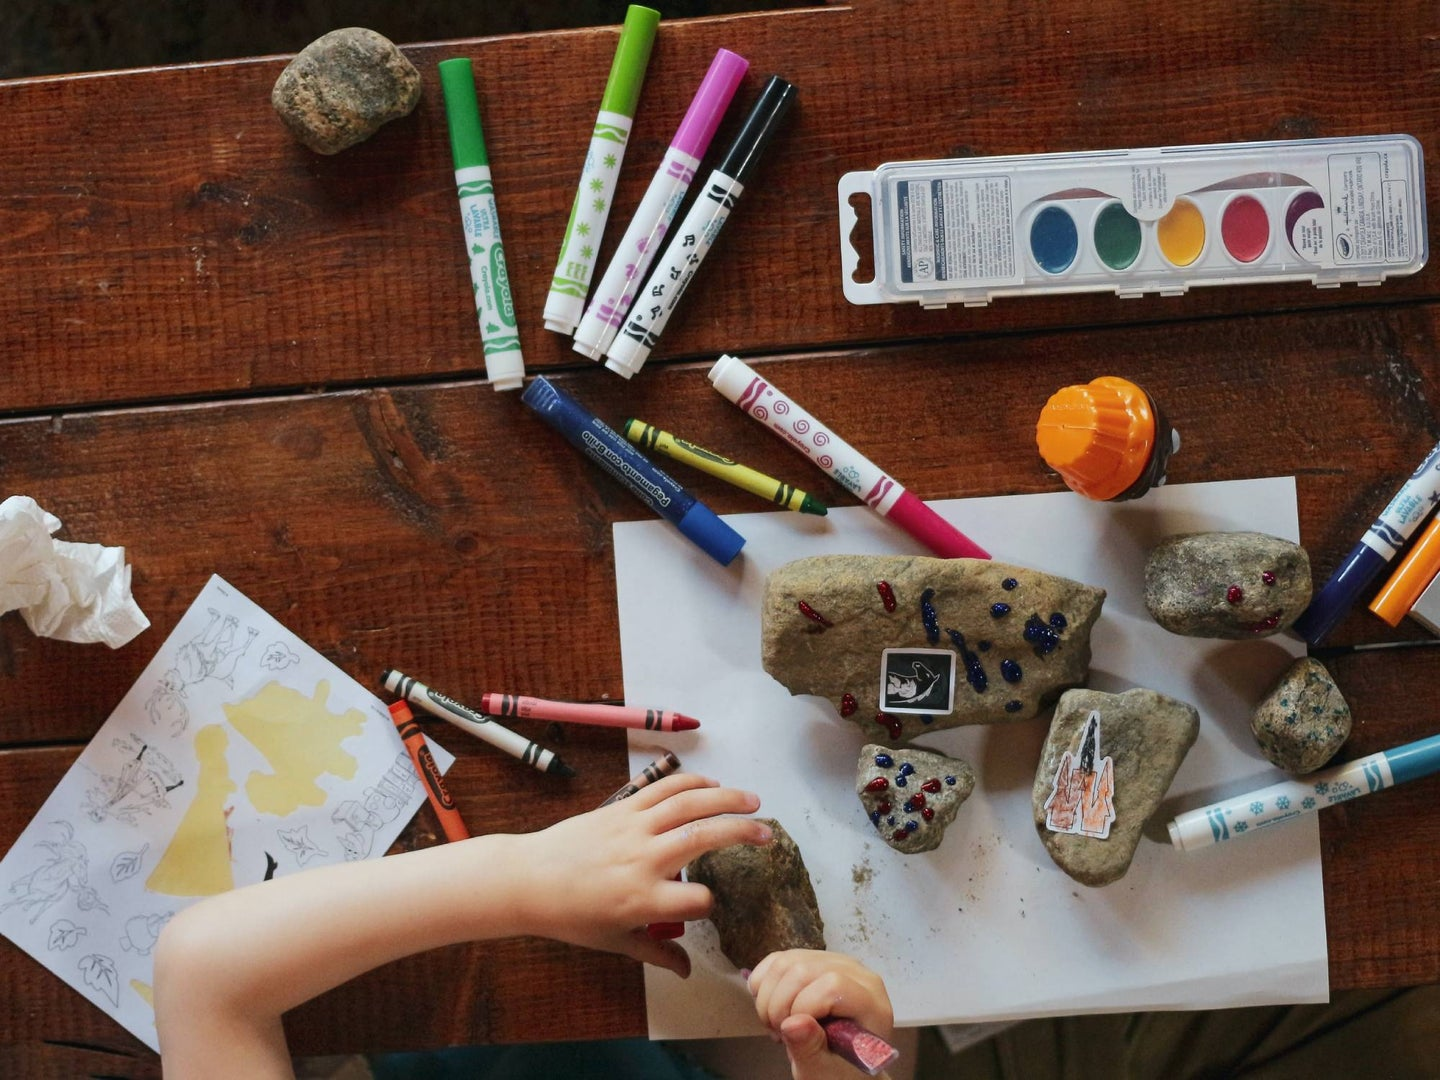 How to declutter your kids' artwork while keeping what matters